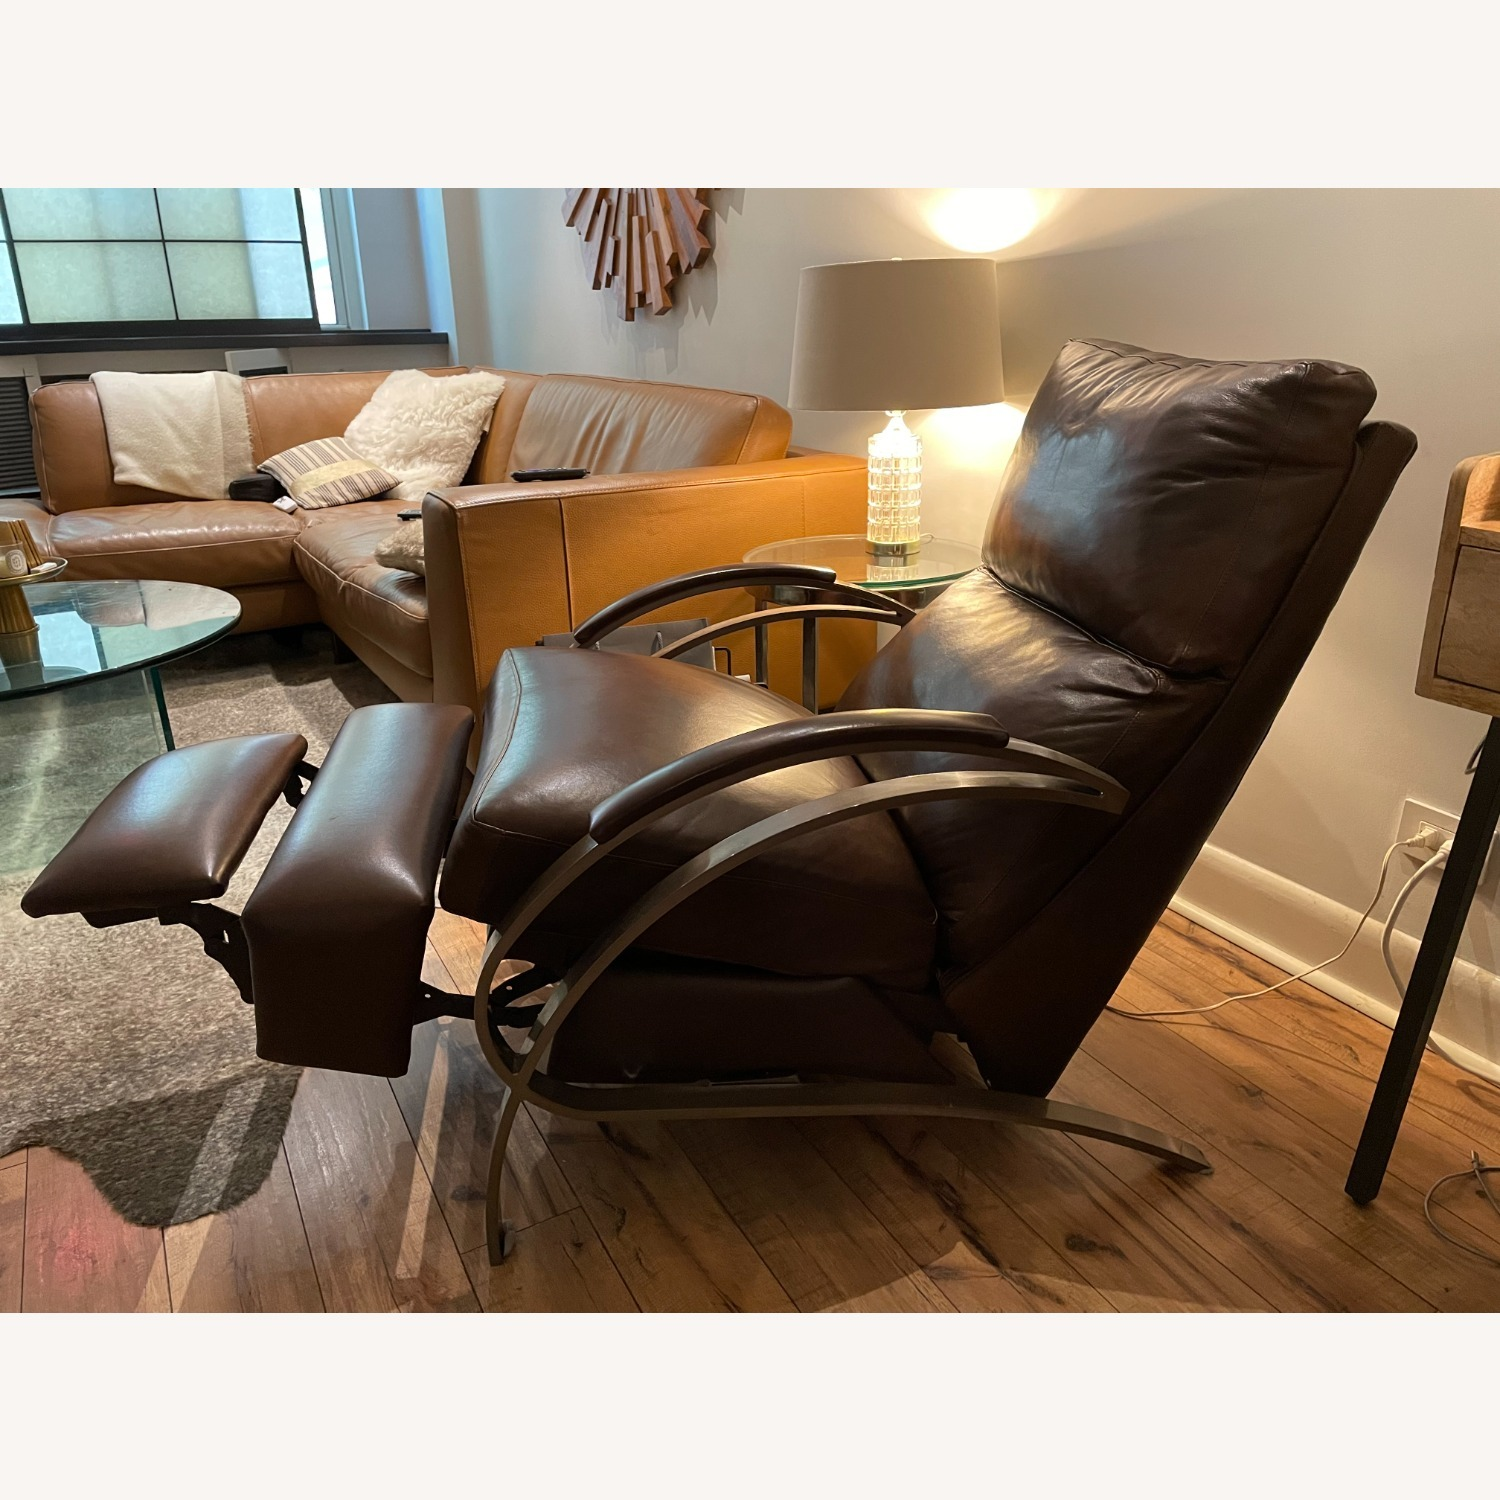 Bloomingdale's Modern Leather Recliner Chair - image-1